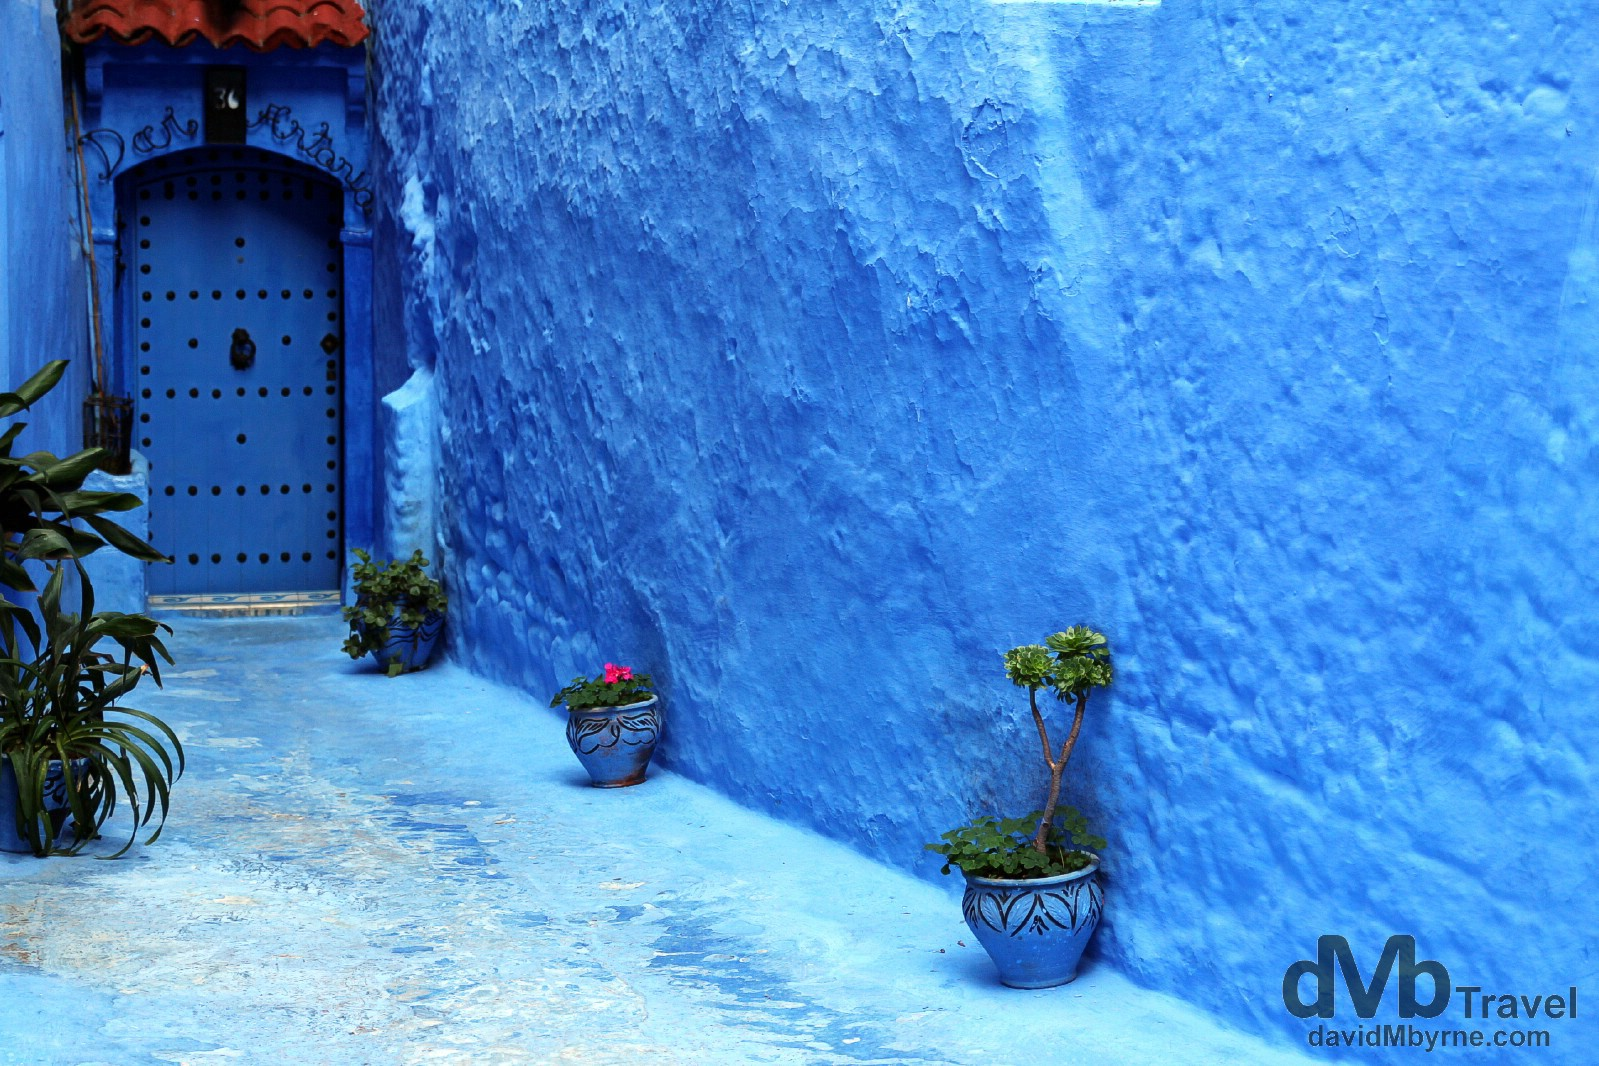 The lane to the Dar Antonio guest house in the medina in Chefchaouen, Morocco. June 1st, 2014.